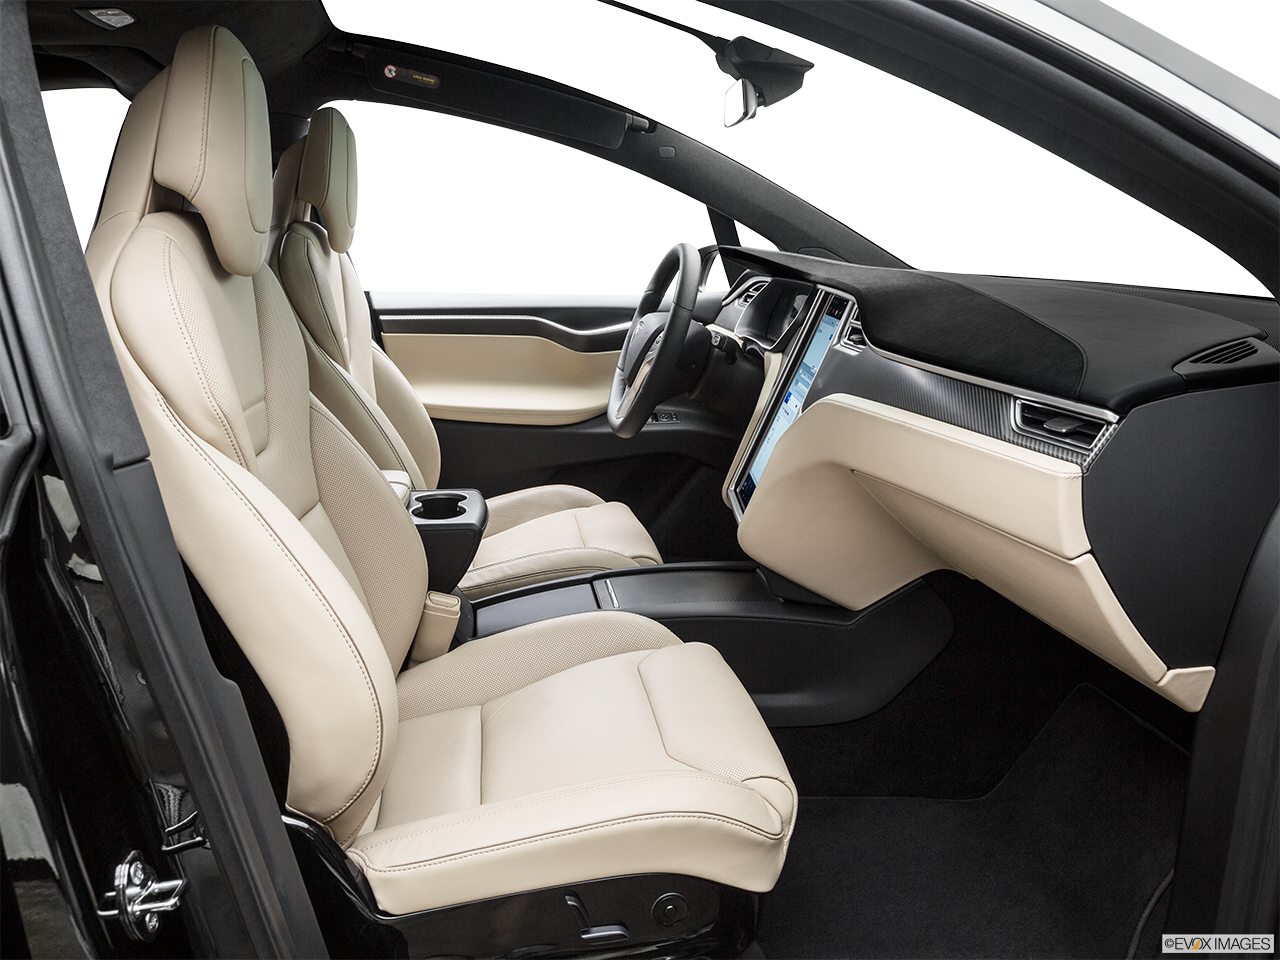 Interior view of the Tesla Model X